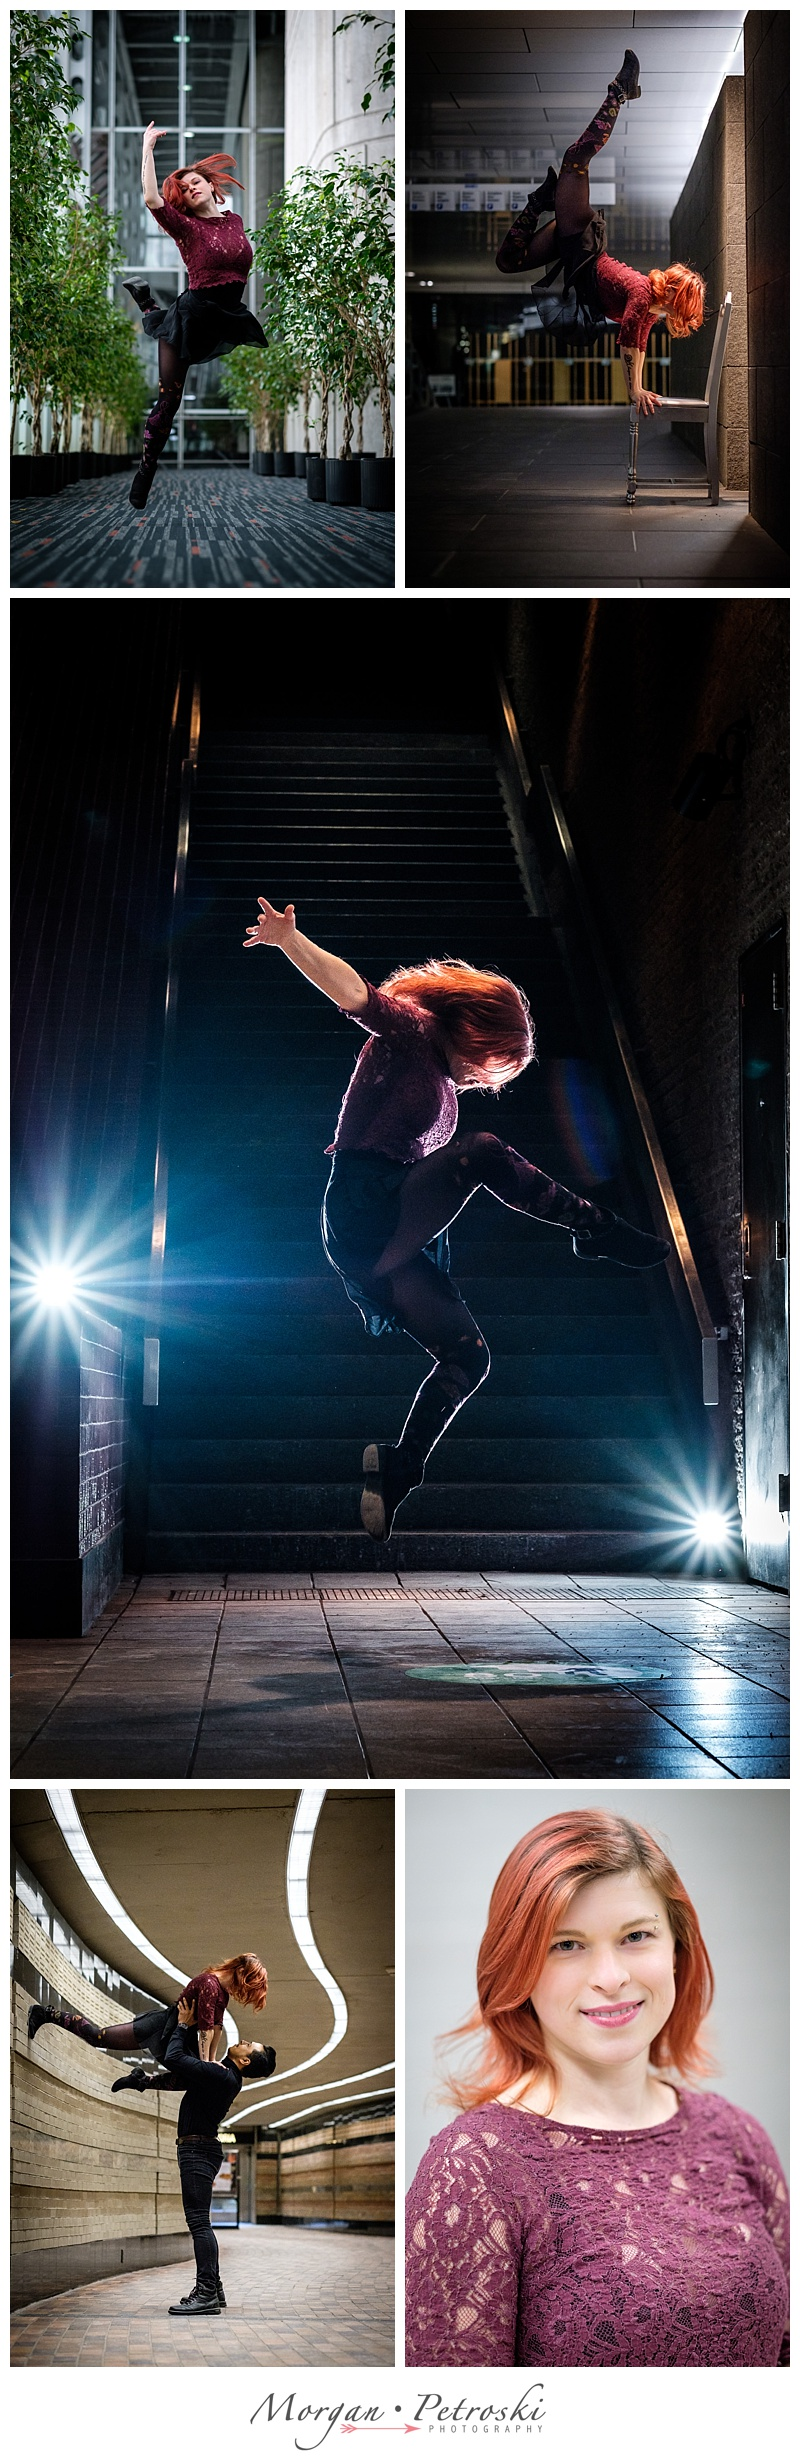 Dancer in the air with two lights behind